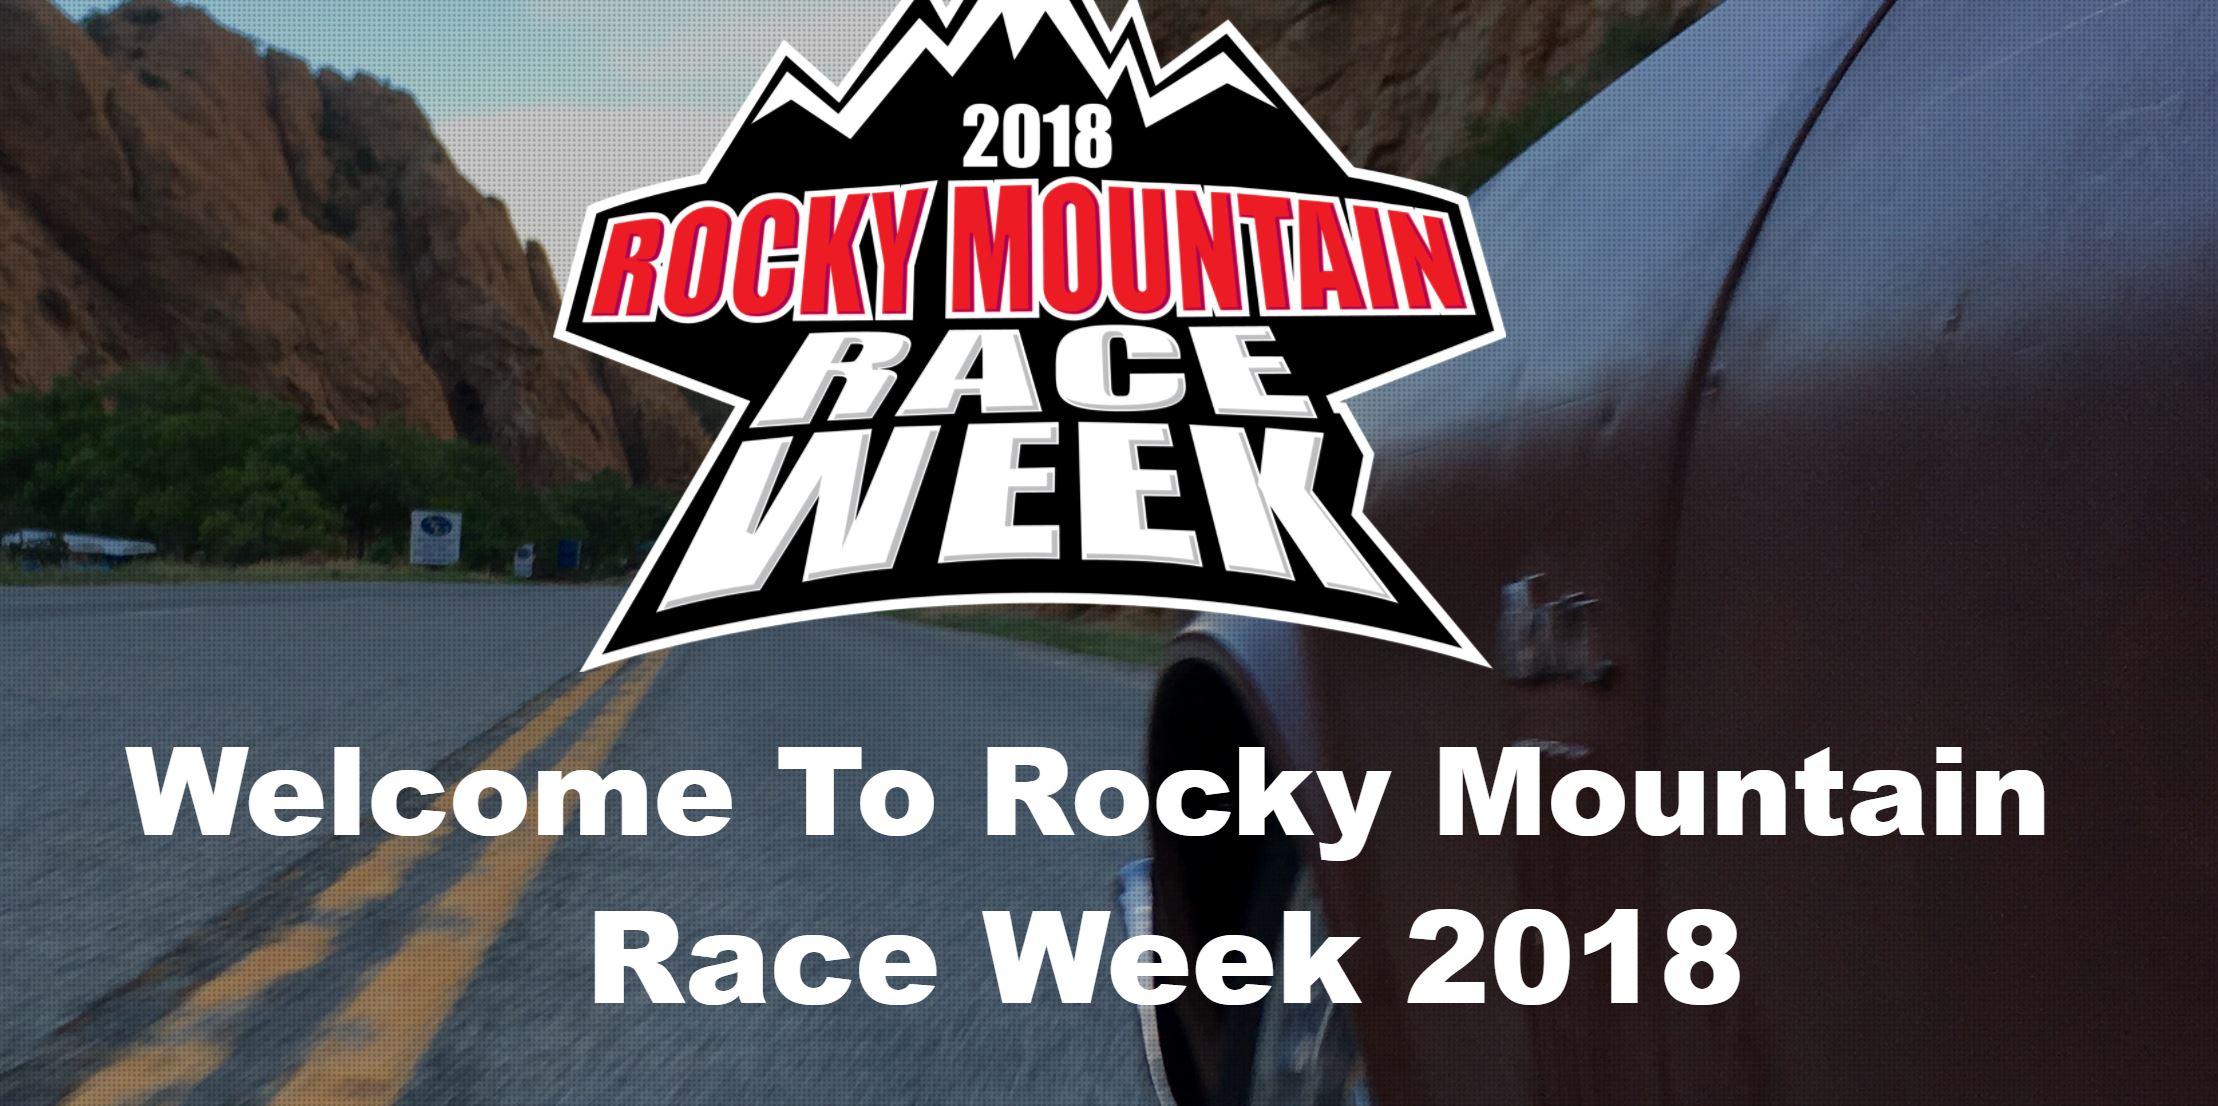 Rocky Mountain Race Week 2018 Registration Starts Today! Join The Coolest Drag Racing Road Trip On Earth!